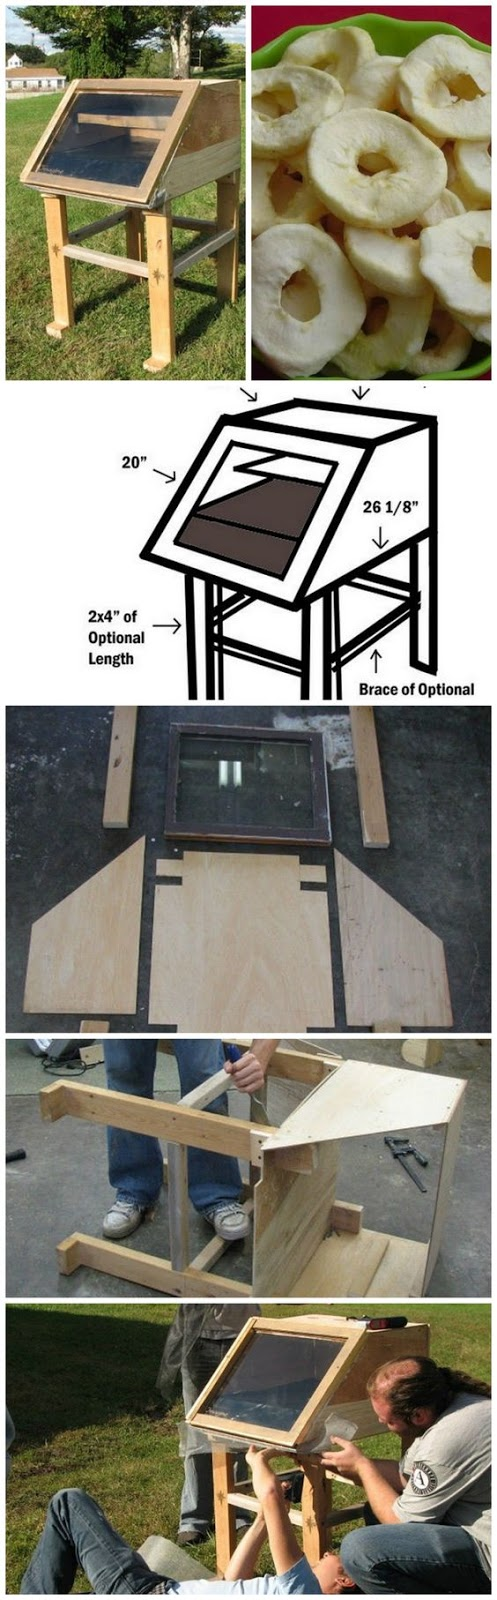 Diy solar energy items 4 off grid projects handy homemade for How to build a solar oven for kids